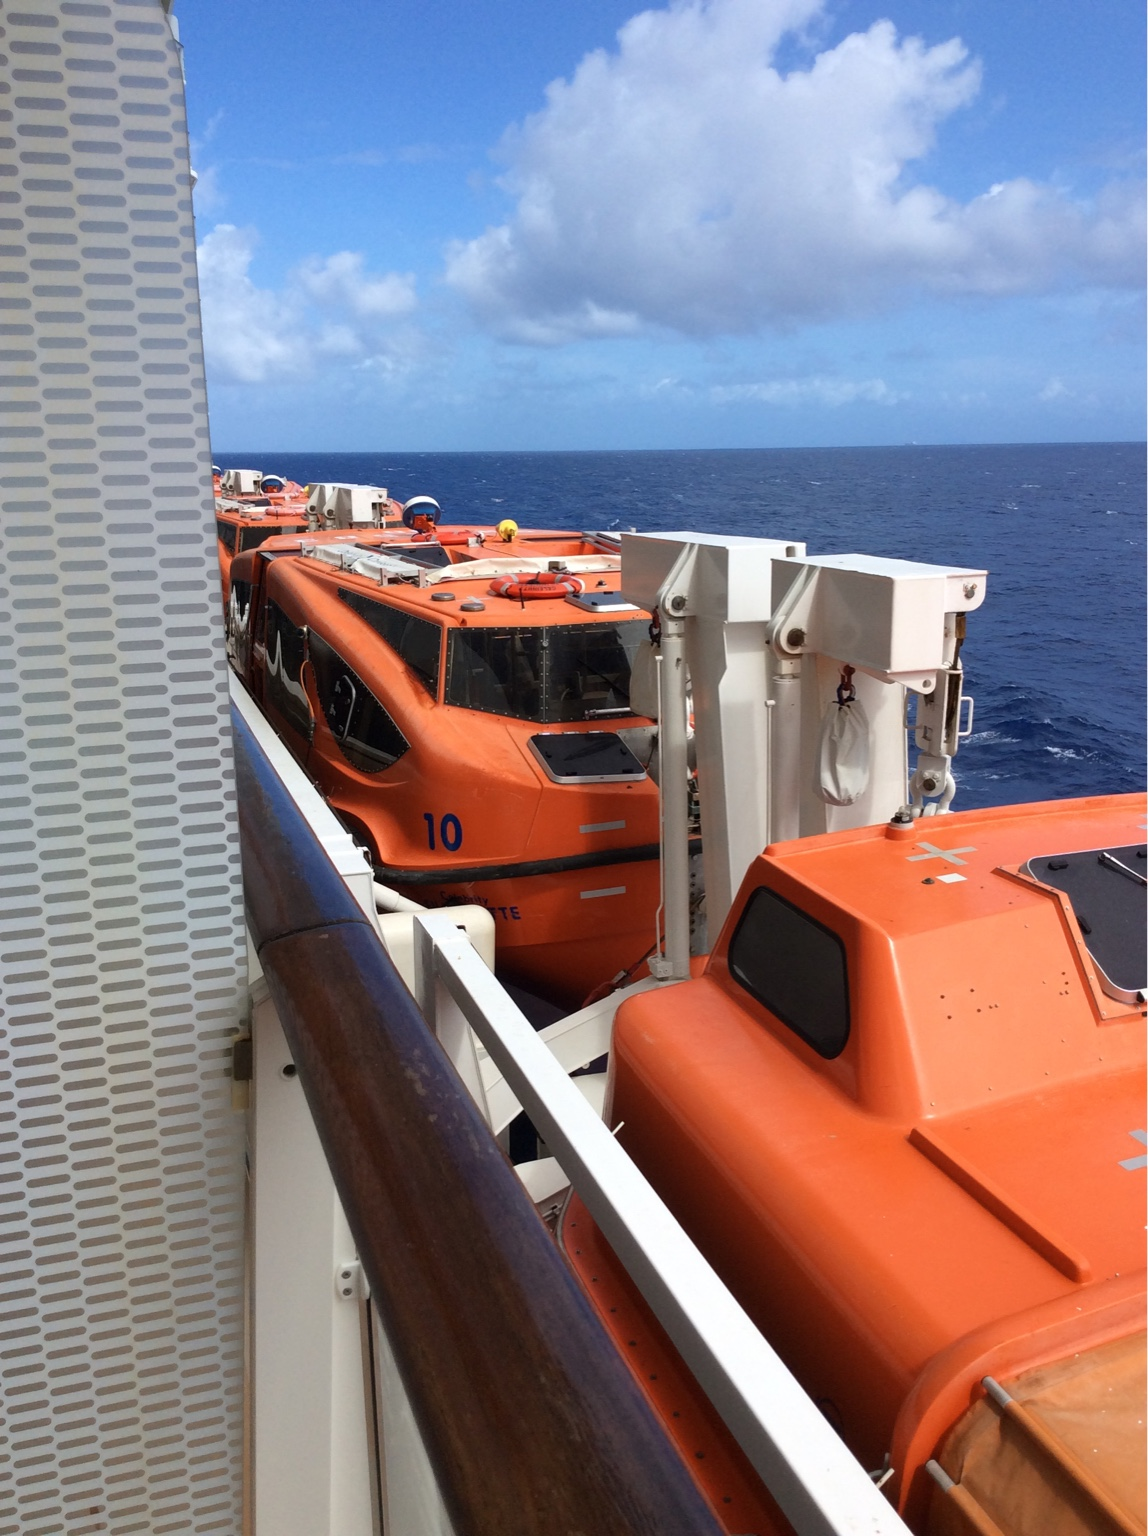 Reflection - obstructed view balconies - Celebrity Cruises ...